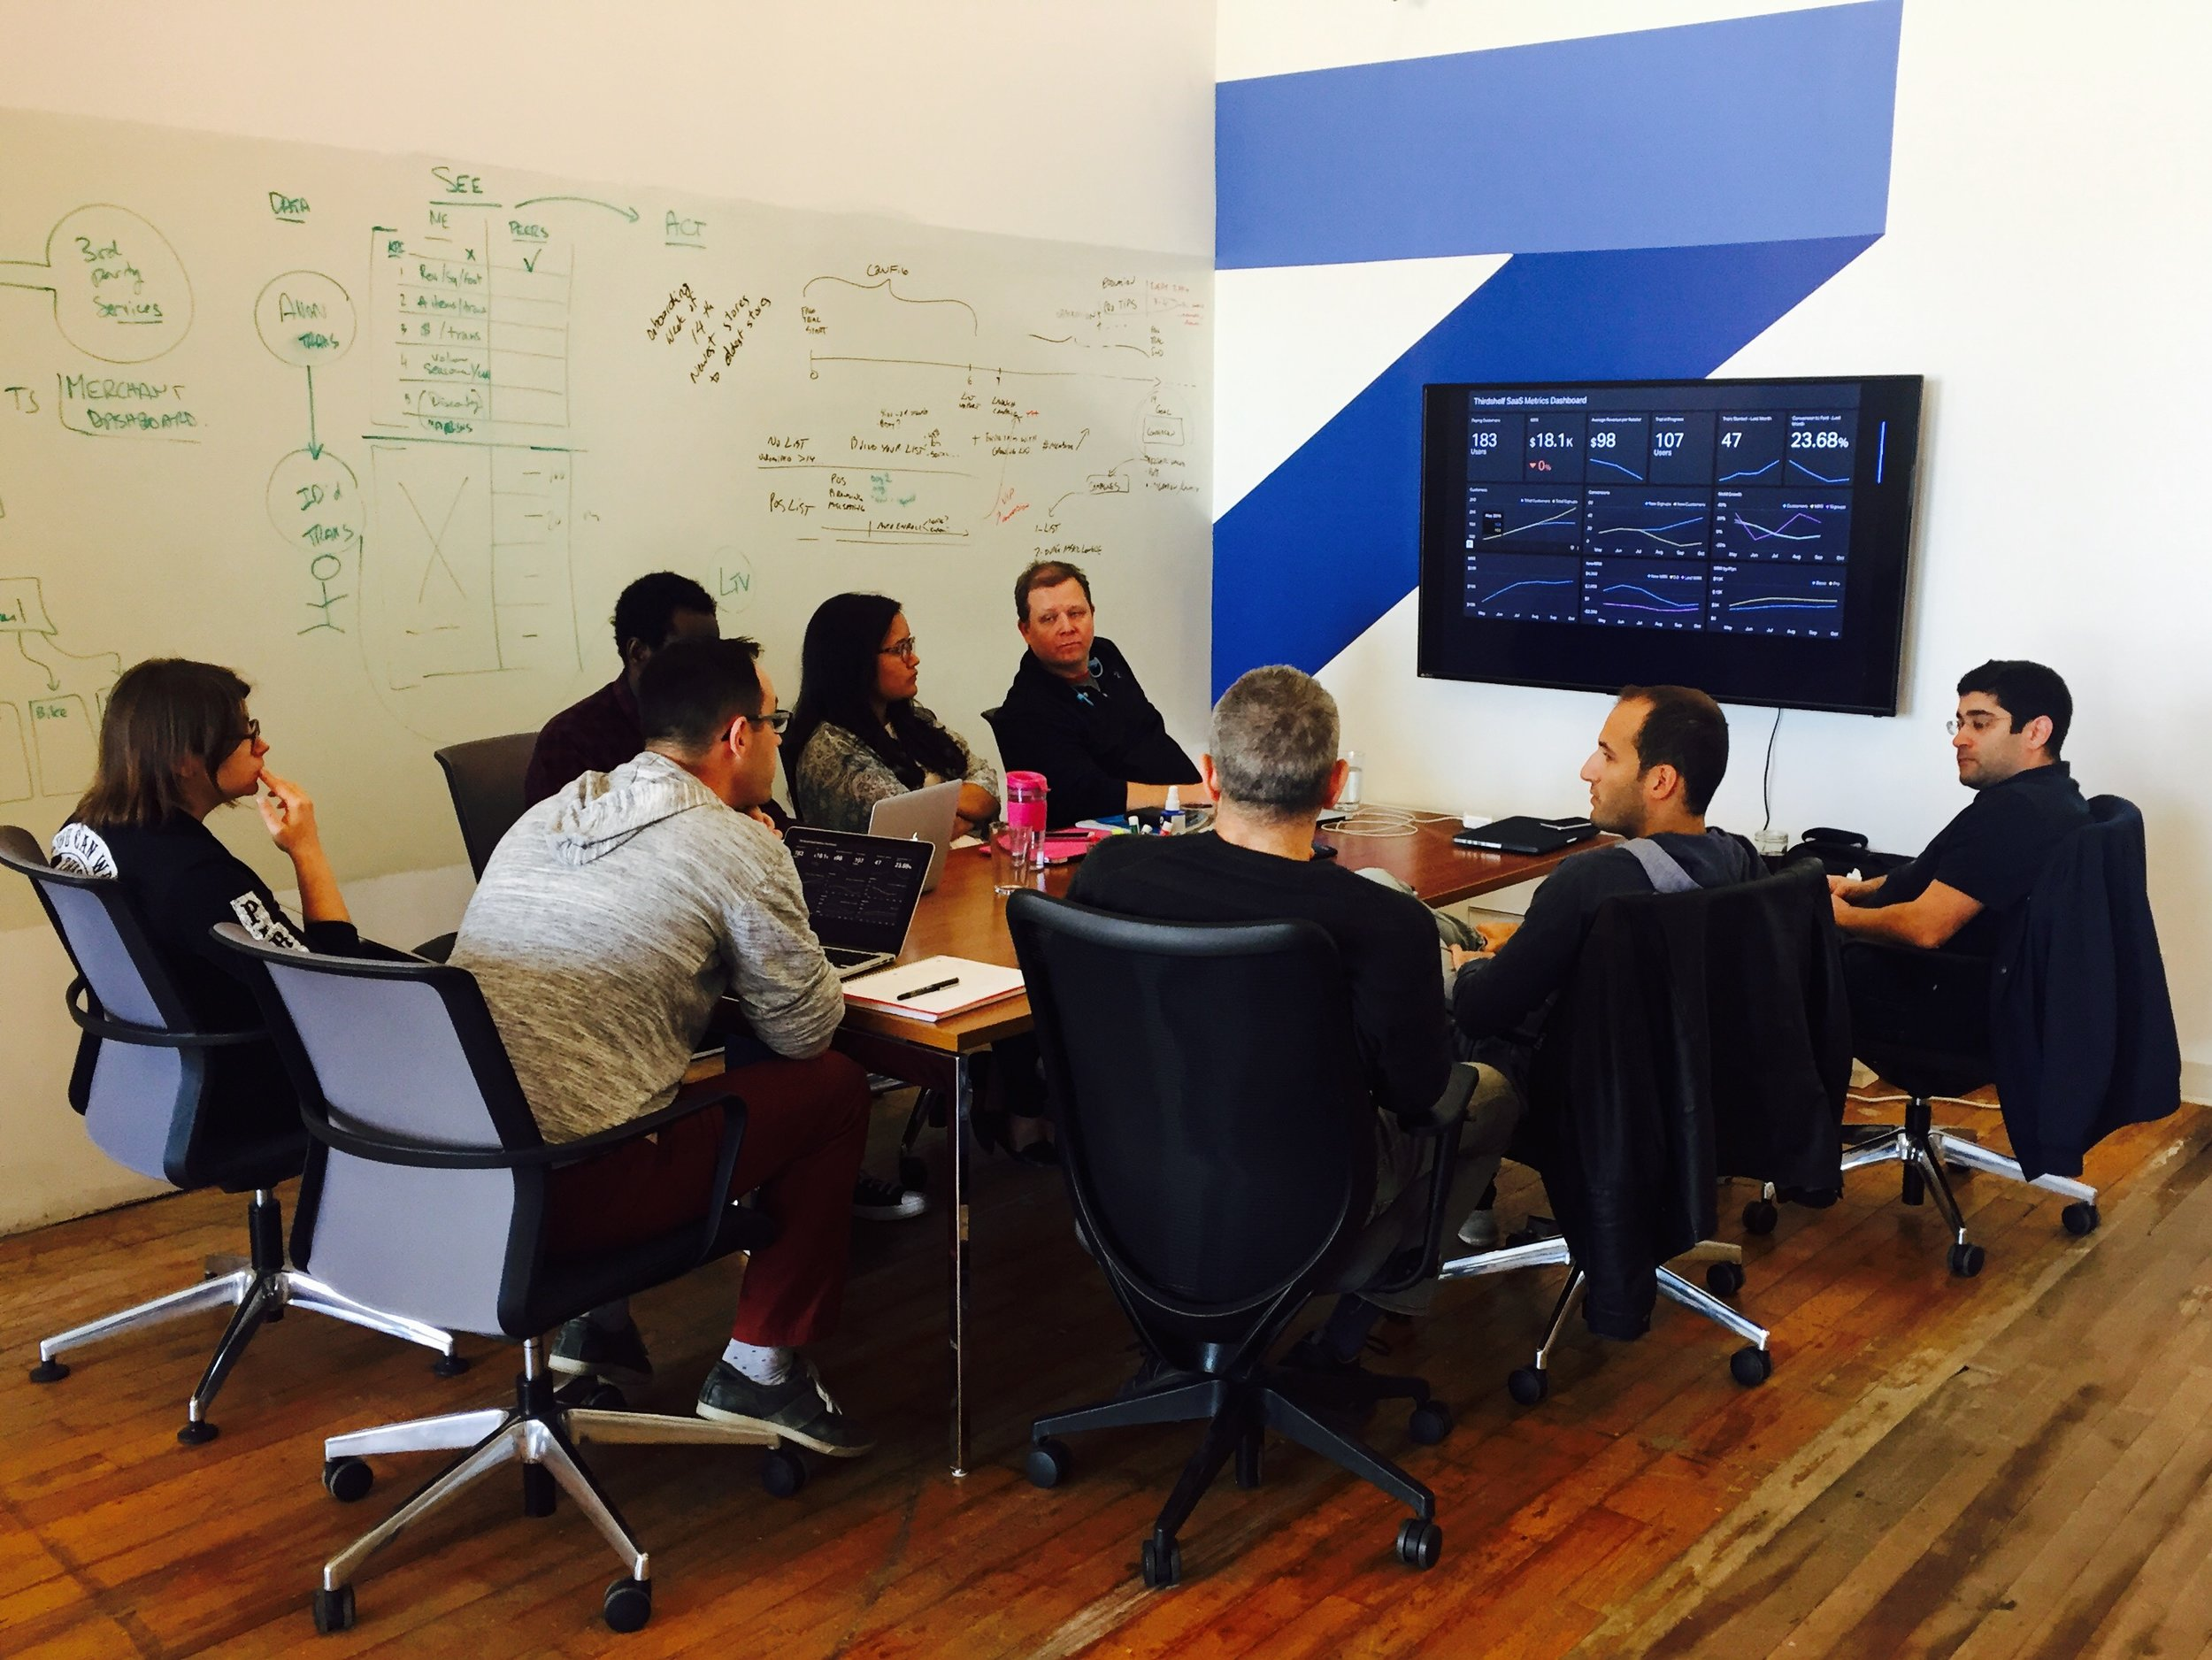 Making data-driven decisions as a team